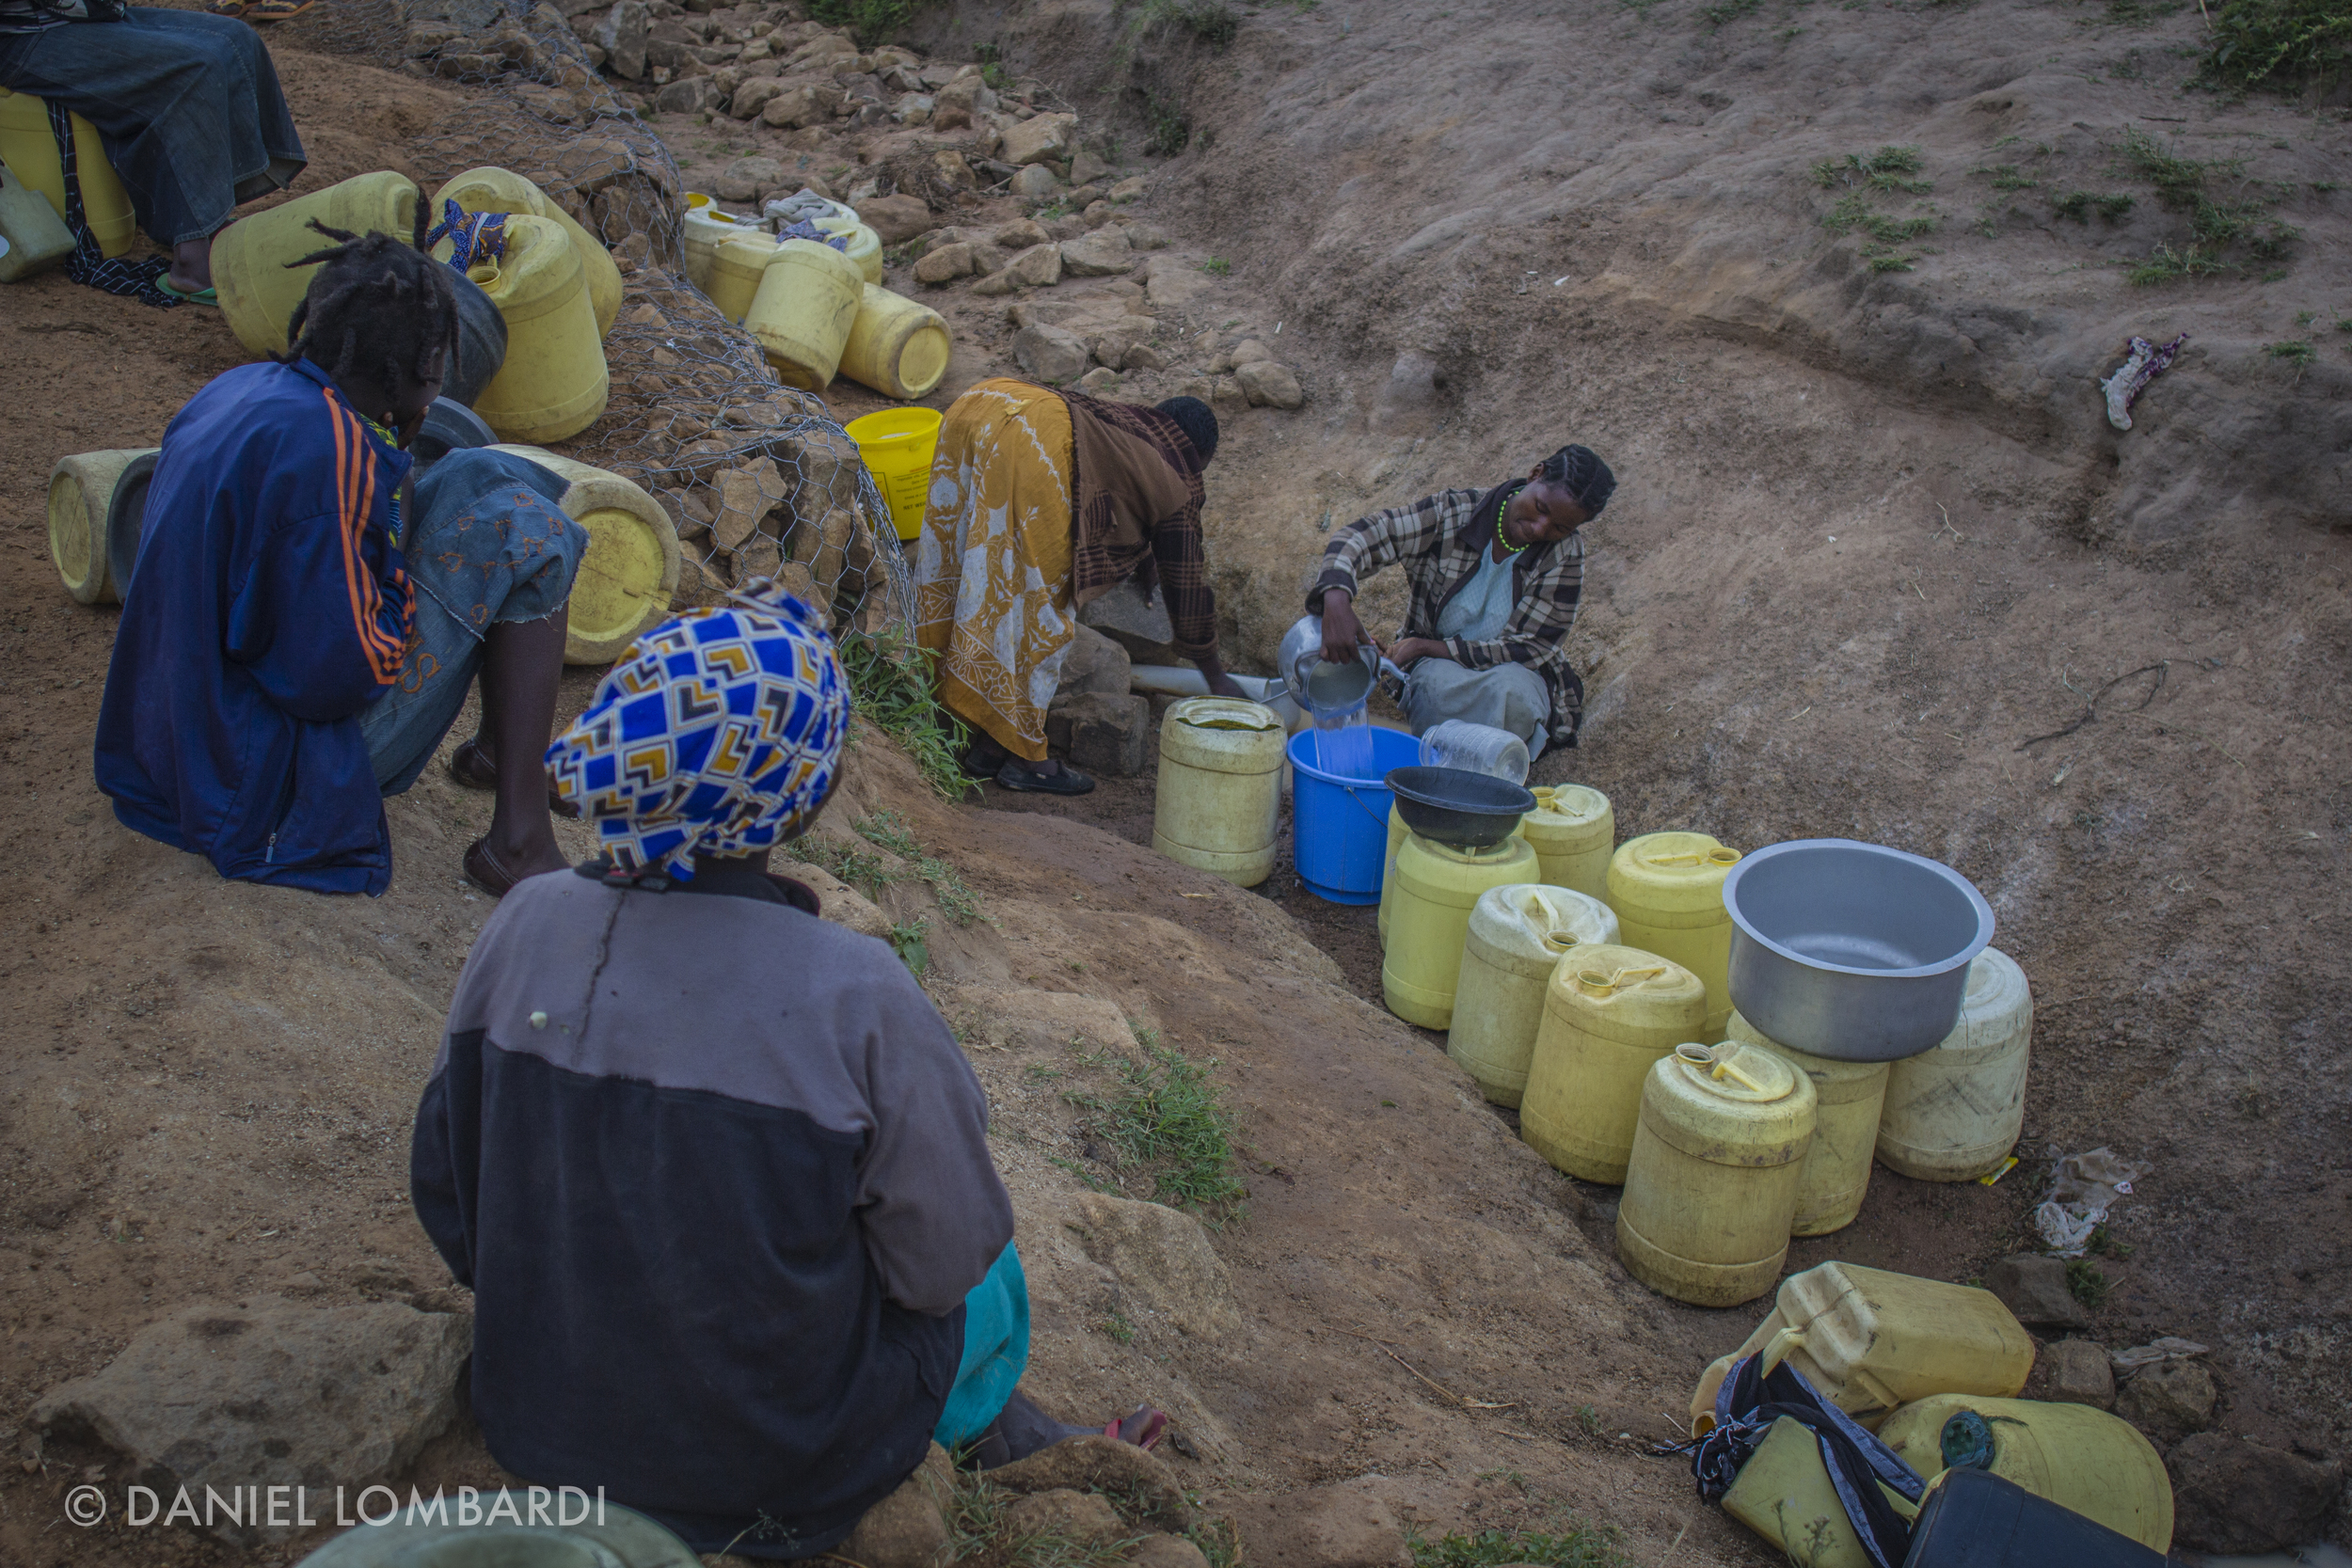 Some women bring half a dozen or more jerrycans to the water sources everyday. Carrying these jugs full of water is extremely time consuming not to mention very difficult.